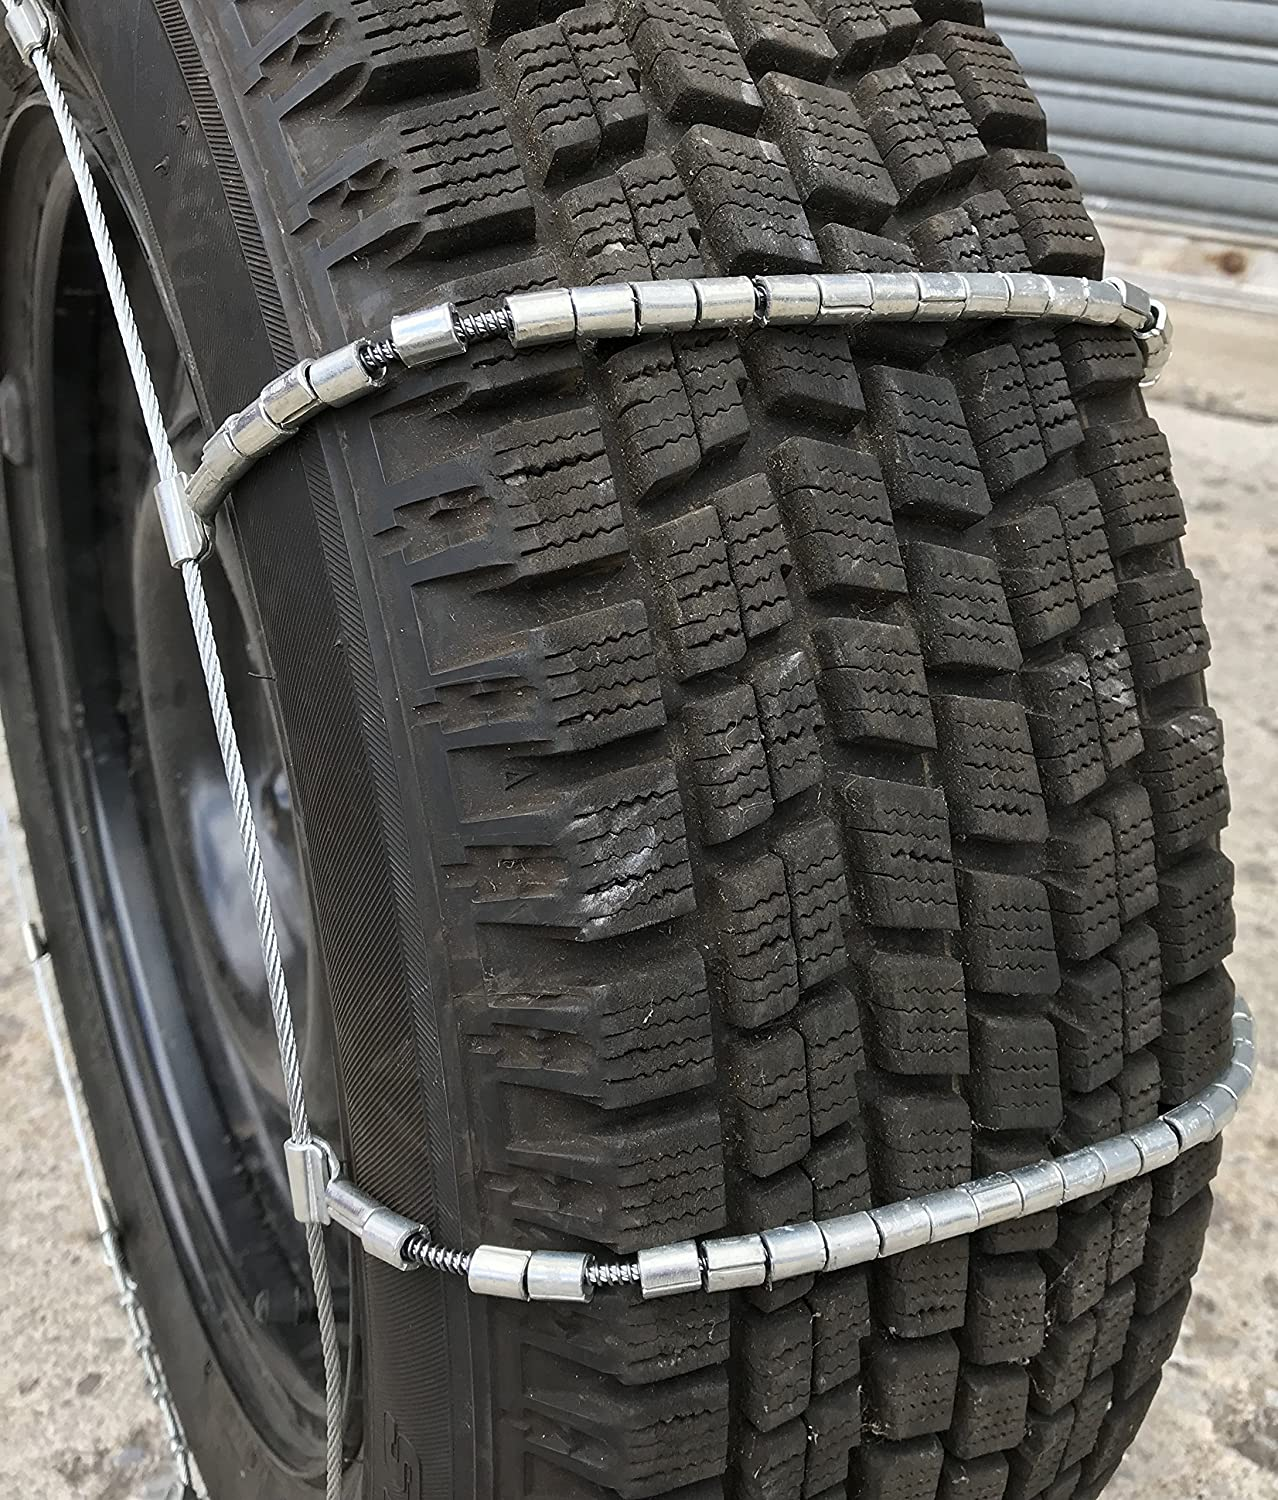 TireChain.com 195//65R15 185R14 P195//75R14 175R15 P185//70R15 195//60R15 195//65R15 195//60R16 P190//65R390 ONORM Diamond Tire Chains